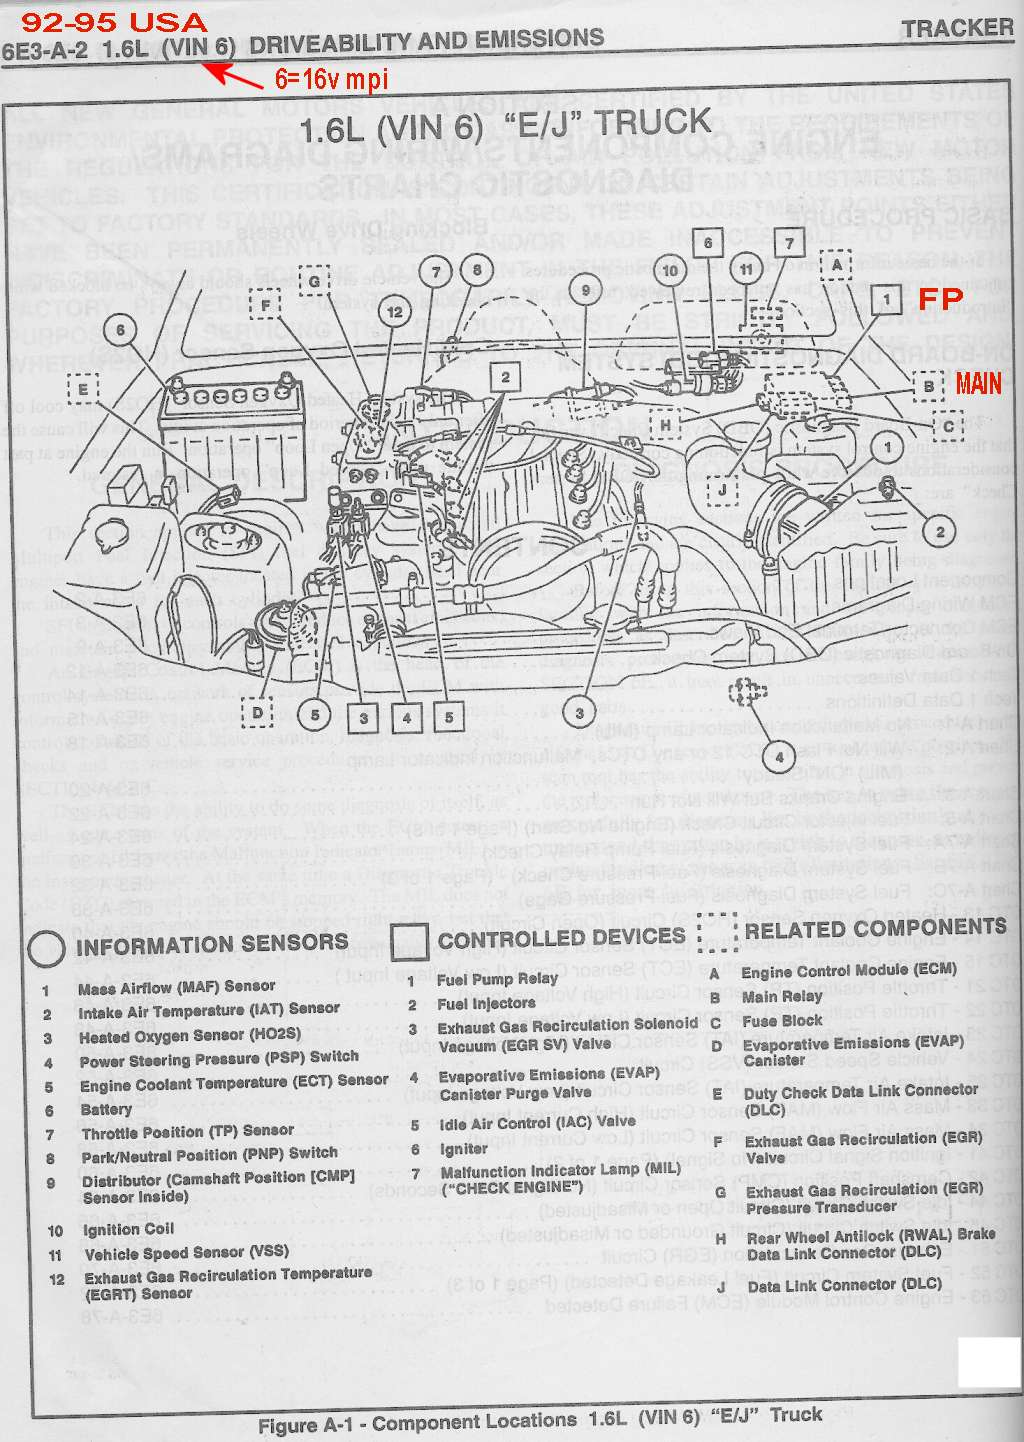 What you need to make engine RUN, the basic schematics page